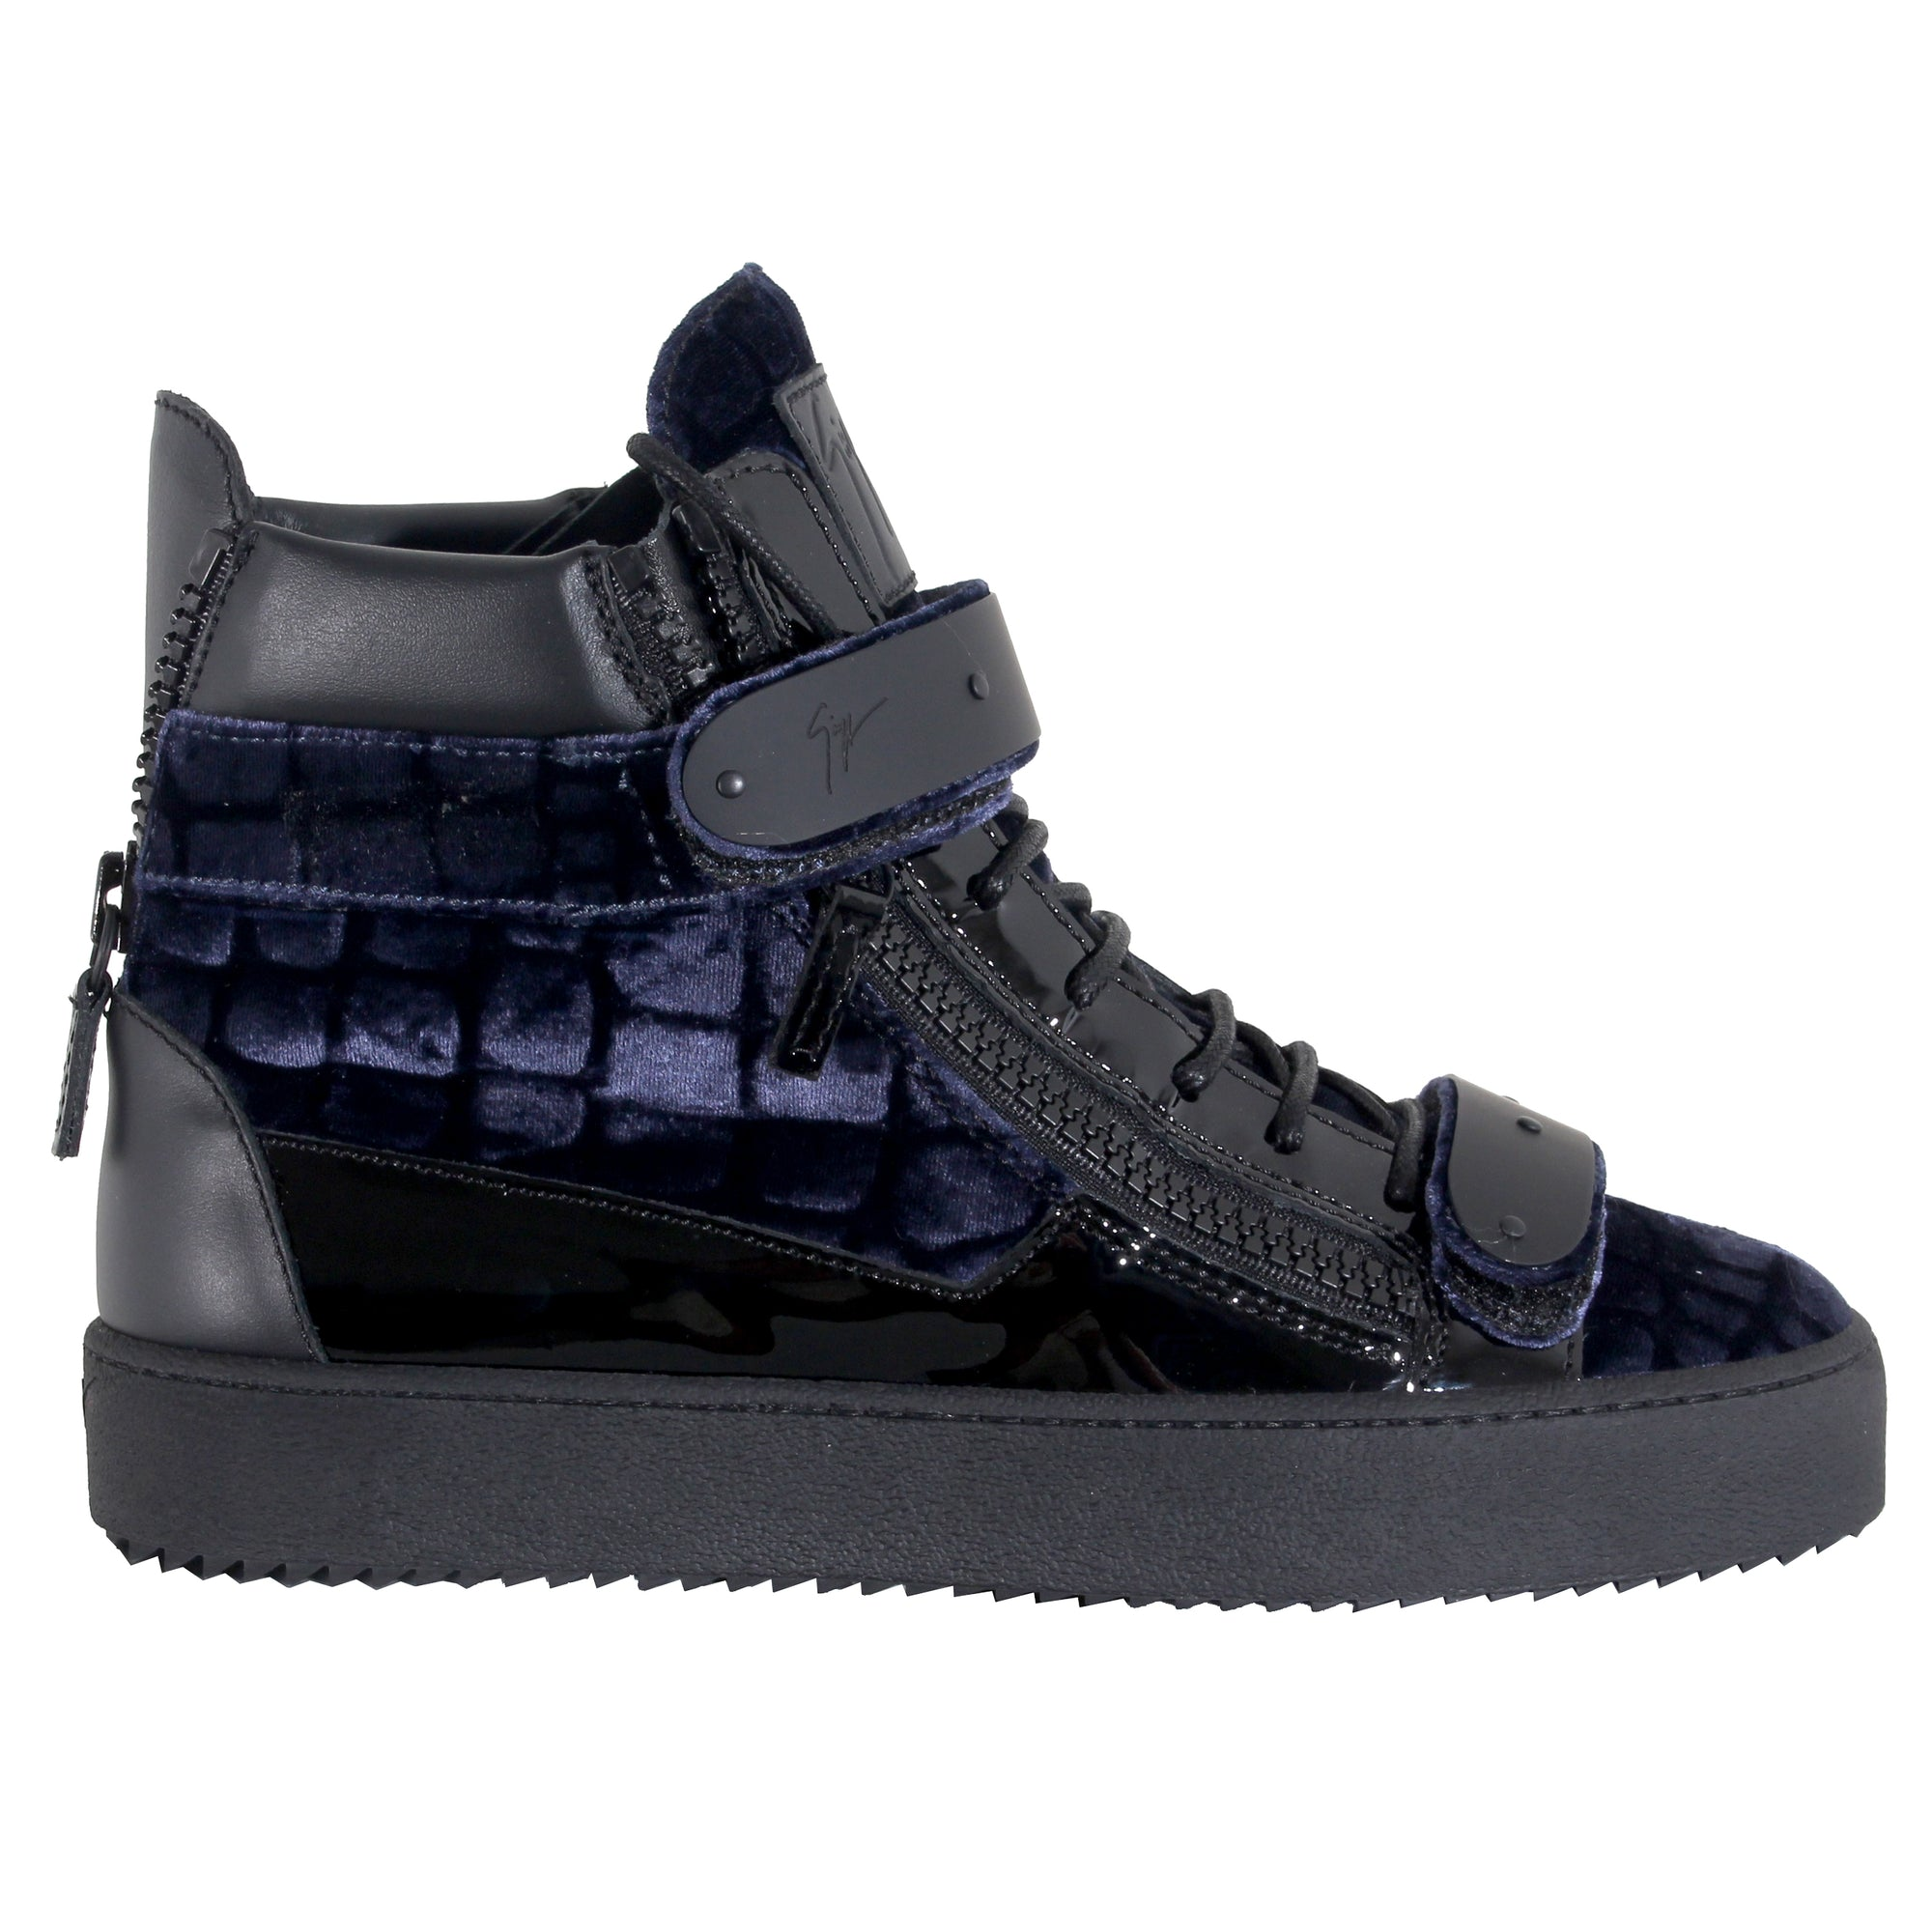 Men's Giuseppe Zanotti Meredith High Top Sneakers